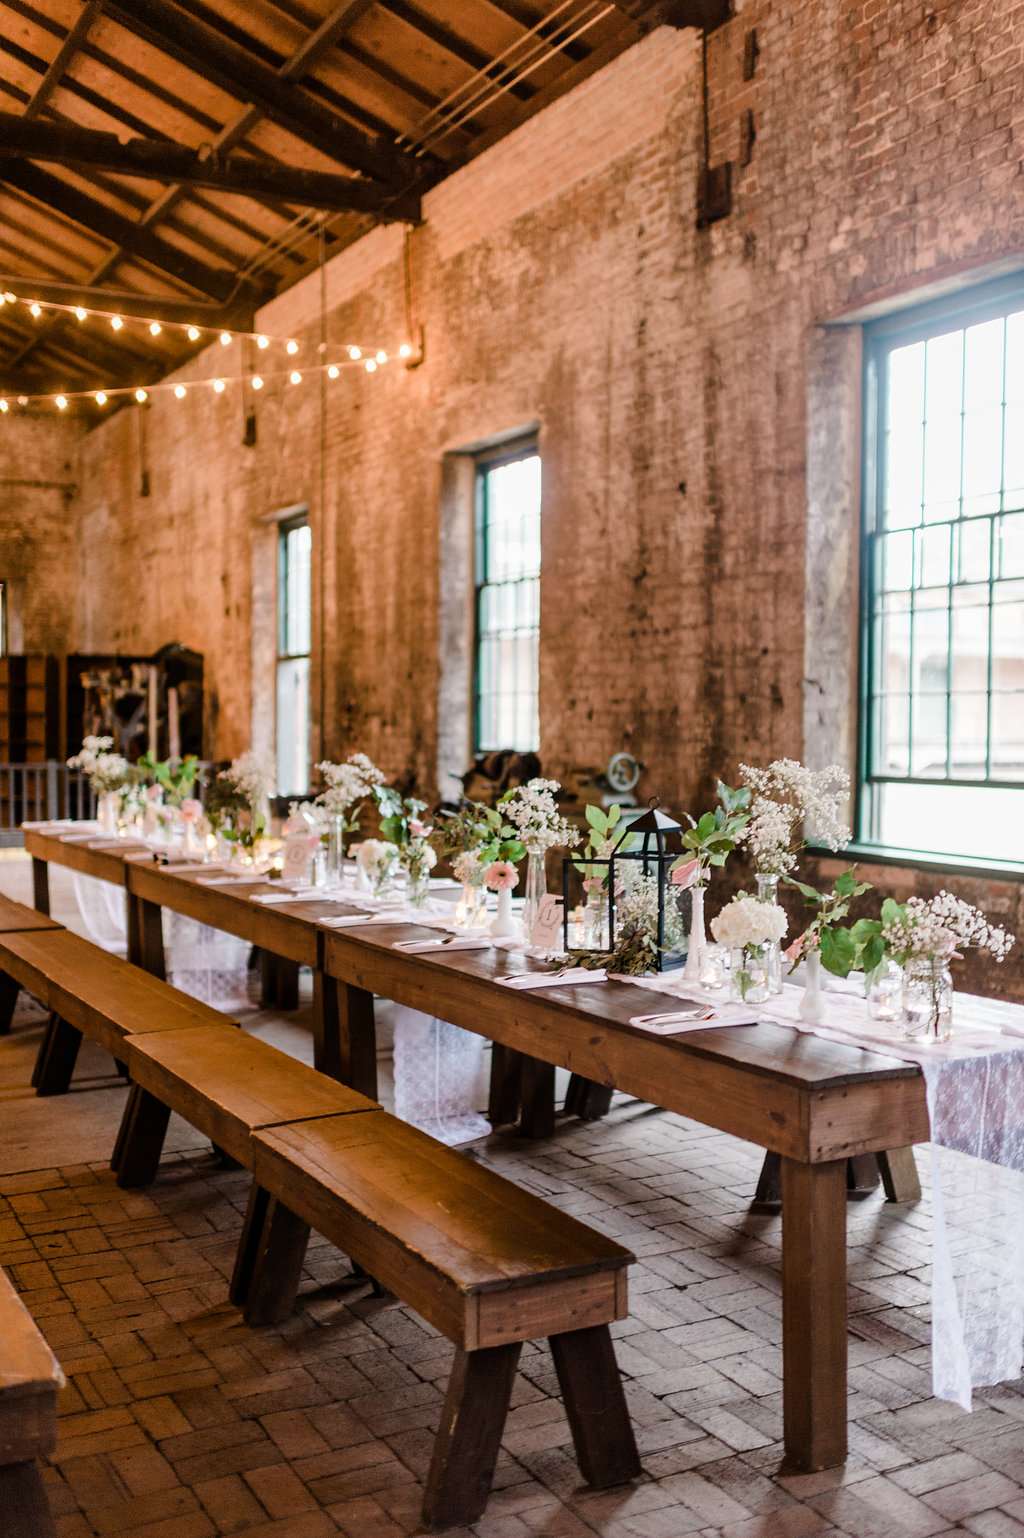 rach-lea-photography-rach-loves-troy-roundhouse-railroad-museum-wedding-ivory-and-beau-savannah-wedding-planner-savannah-weddings-savannah-florist-ivory-and-beau-bridal-boutique-succulent-blush-wedding-42.jpg